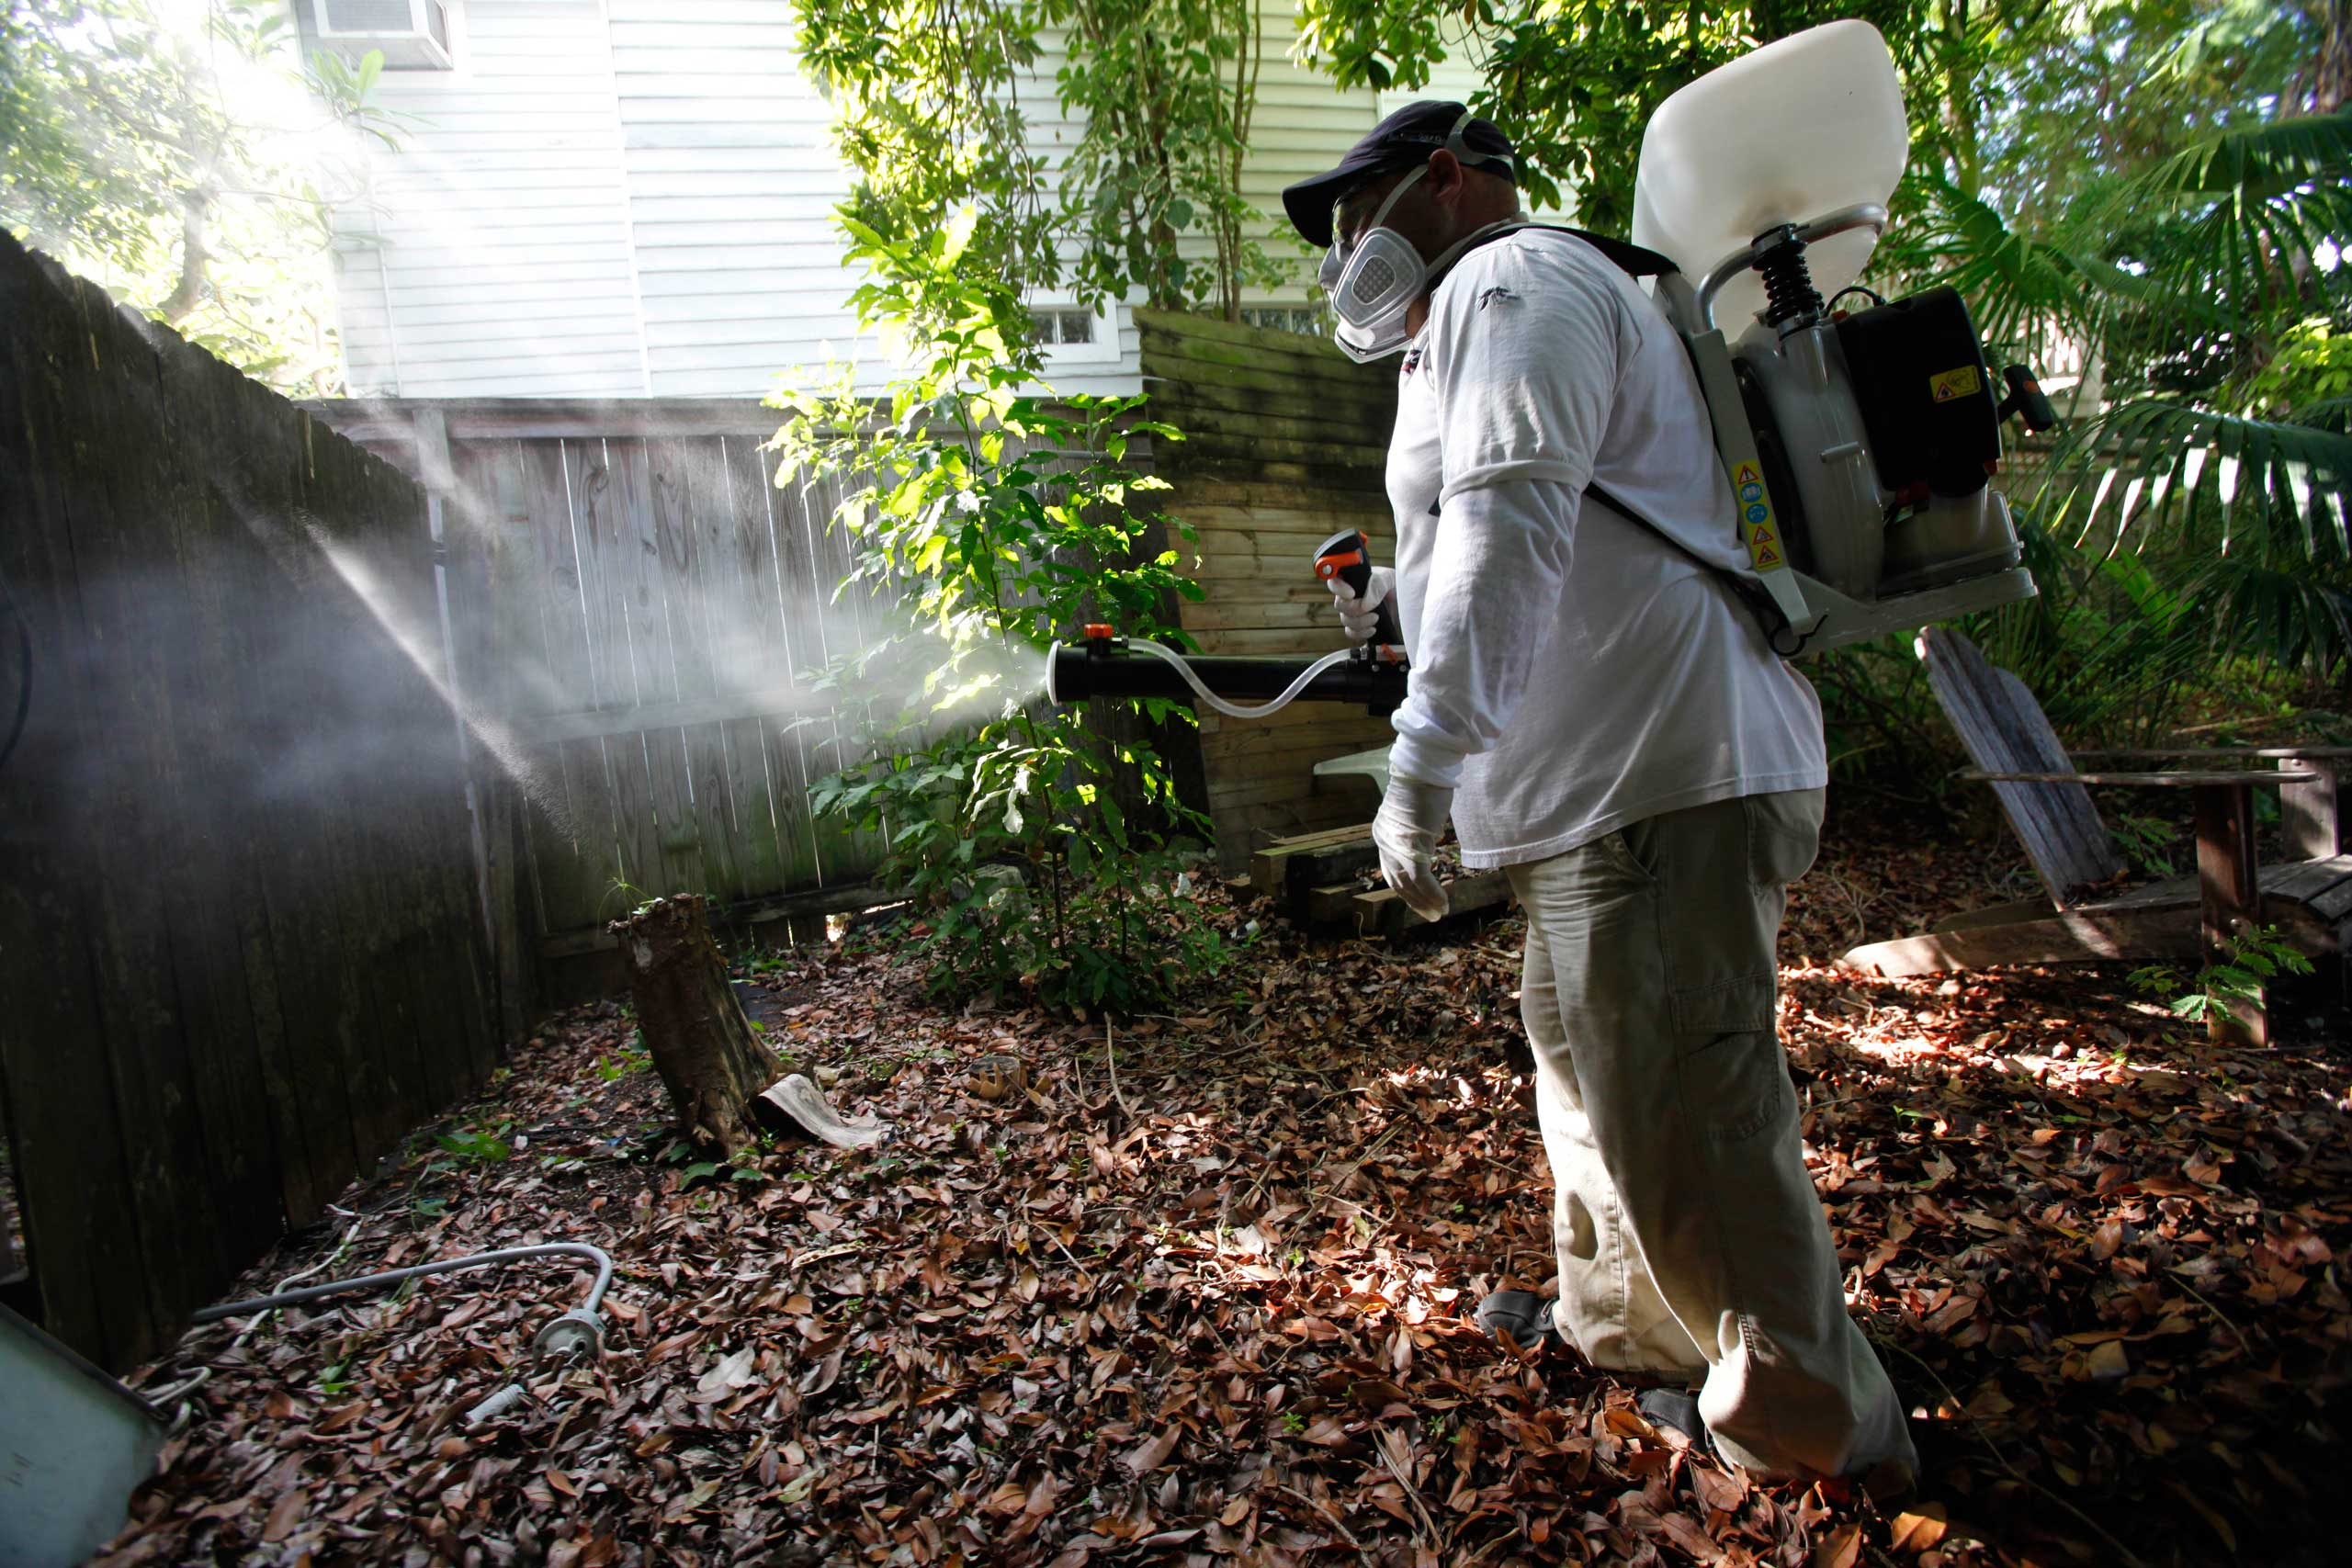 Jason Garcia, a field inspector with the Florida Keys Mosquito Control District, tests a sprayer that could be used in the future to spray pesticides to control mosquitos in Key West, Fla., on Oct. 4, 2012